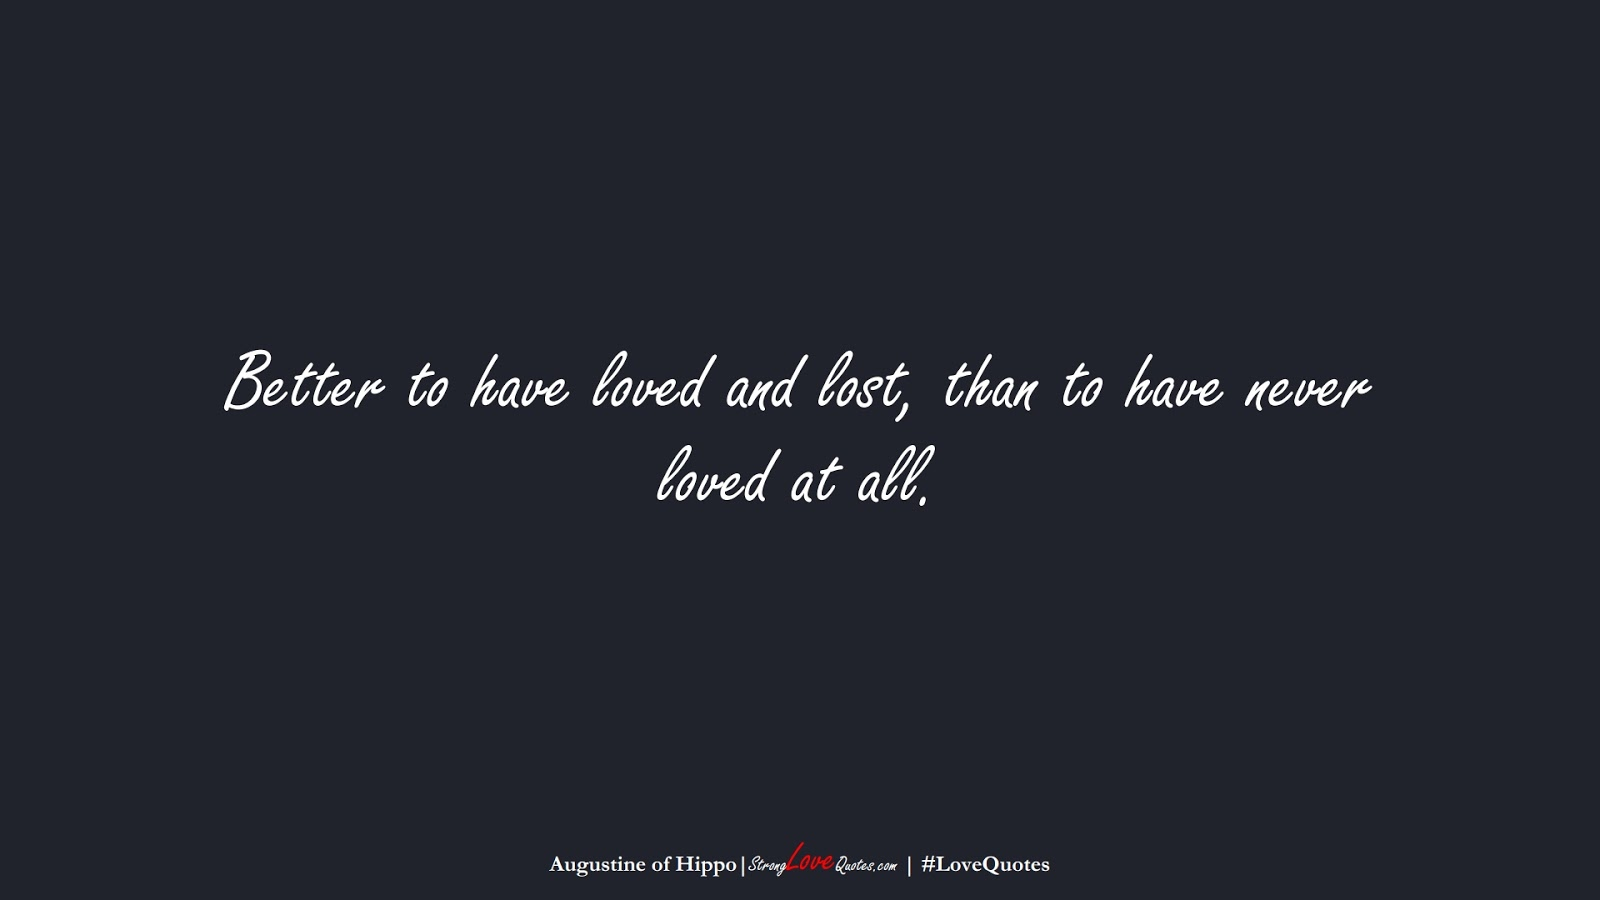 Better to have loved and lost, than to have never loved at all. (Augustine of Hippo);  #LoveQuotes